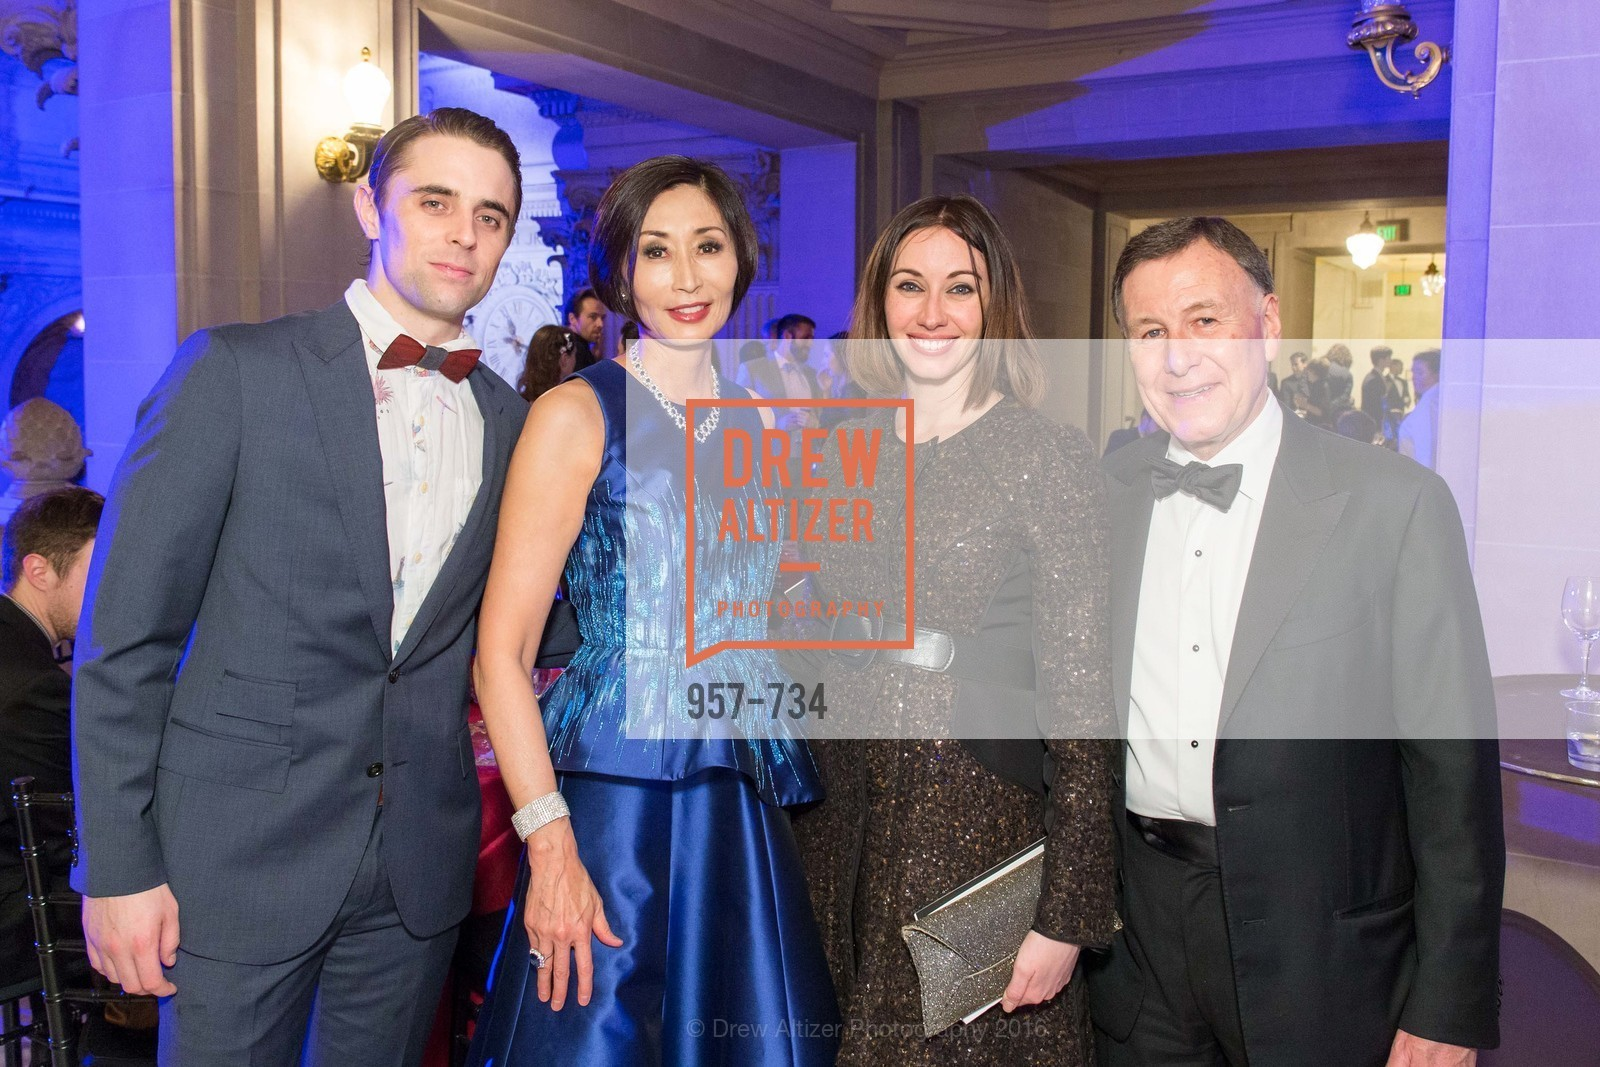 Luke Ingham, Yurie Pascarella, Danielle Rowe, Carl Pascarella, San Francisco Ballet 2016 ENCORE! Opening Night Gala, San Francisco City Hall. 1 Dr Carlton B Goodlett Pl, January 21st, 2016,Drew Altizer, Drew Altizer Photography, full-service agency, private events, San Francisco photographer, photographer california